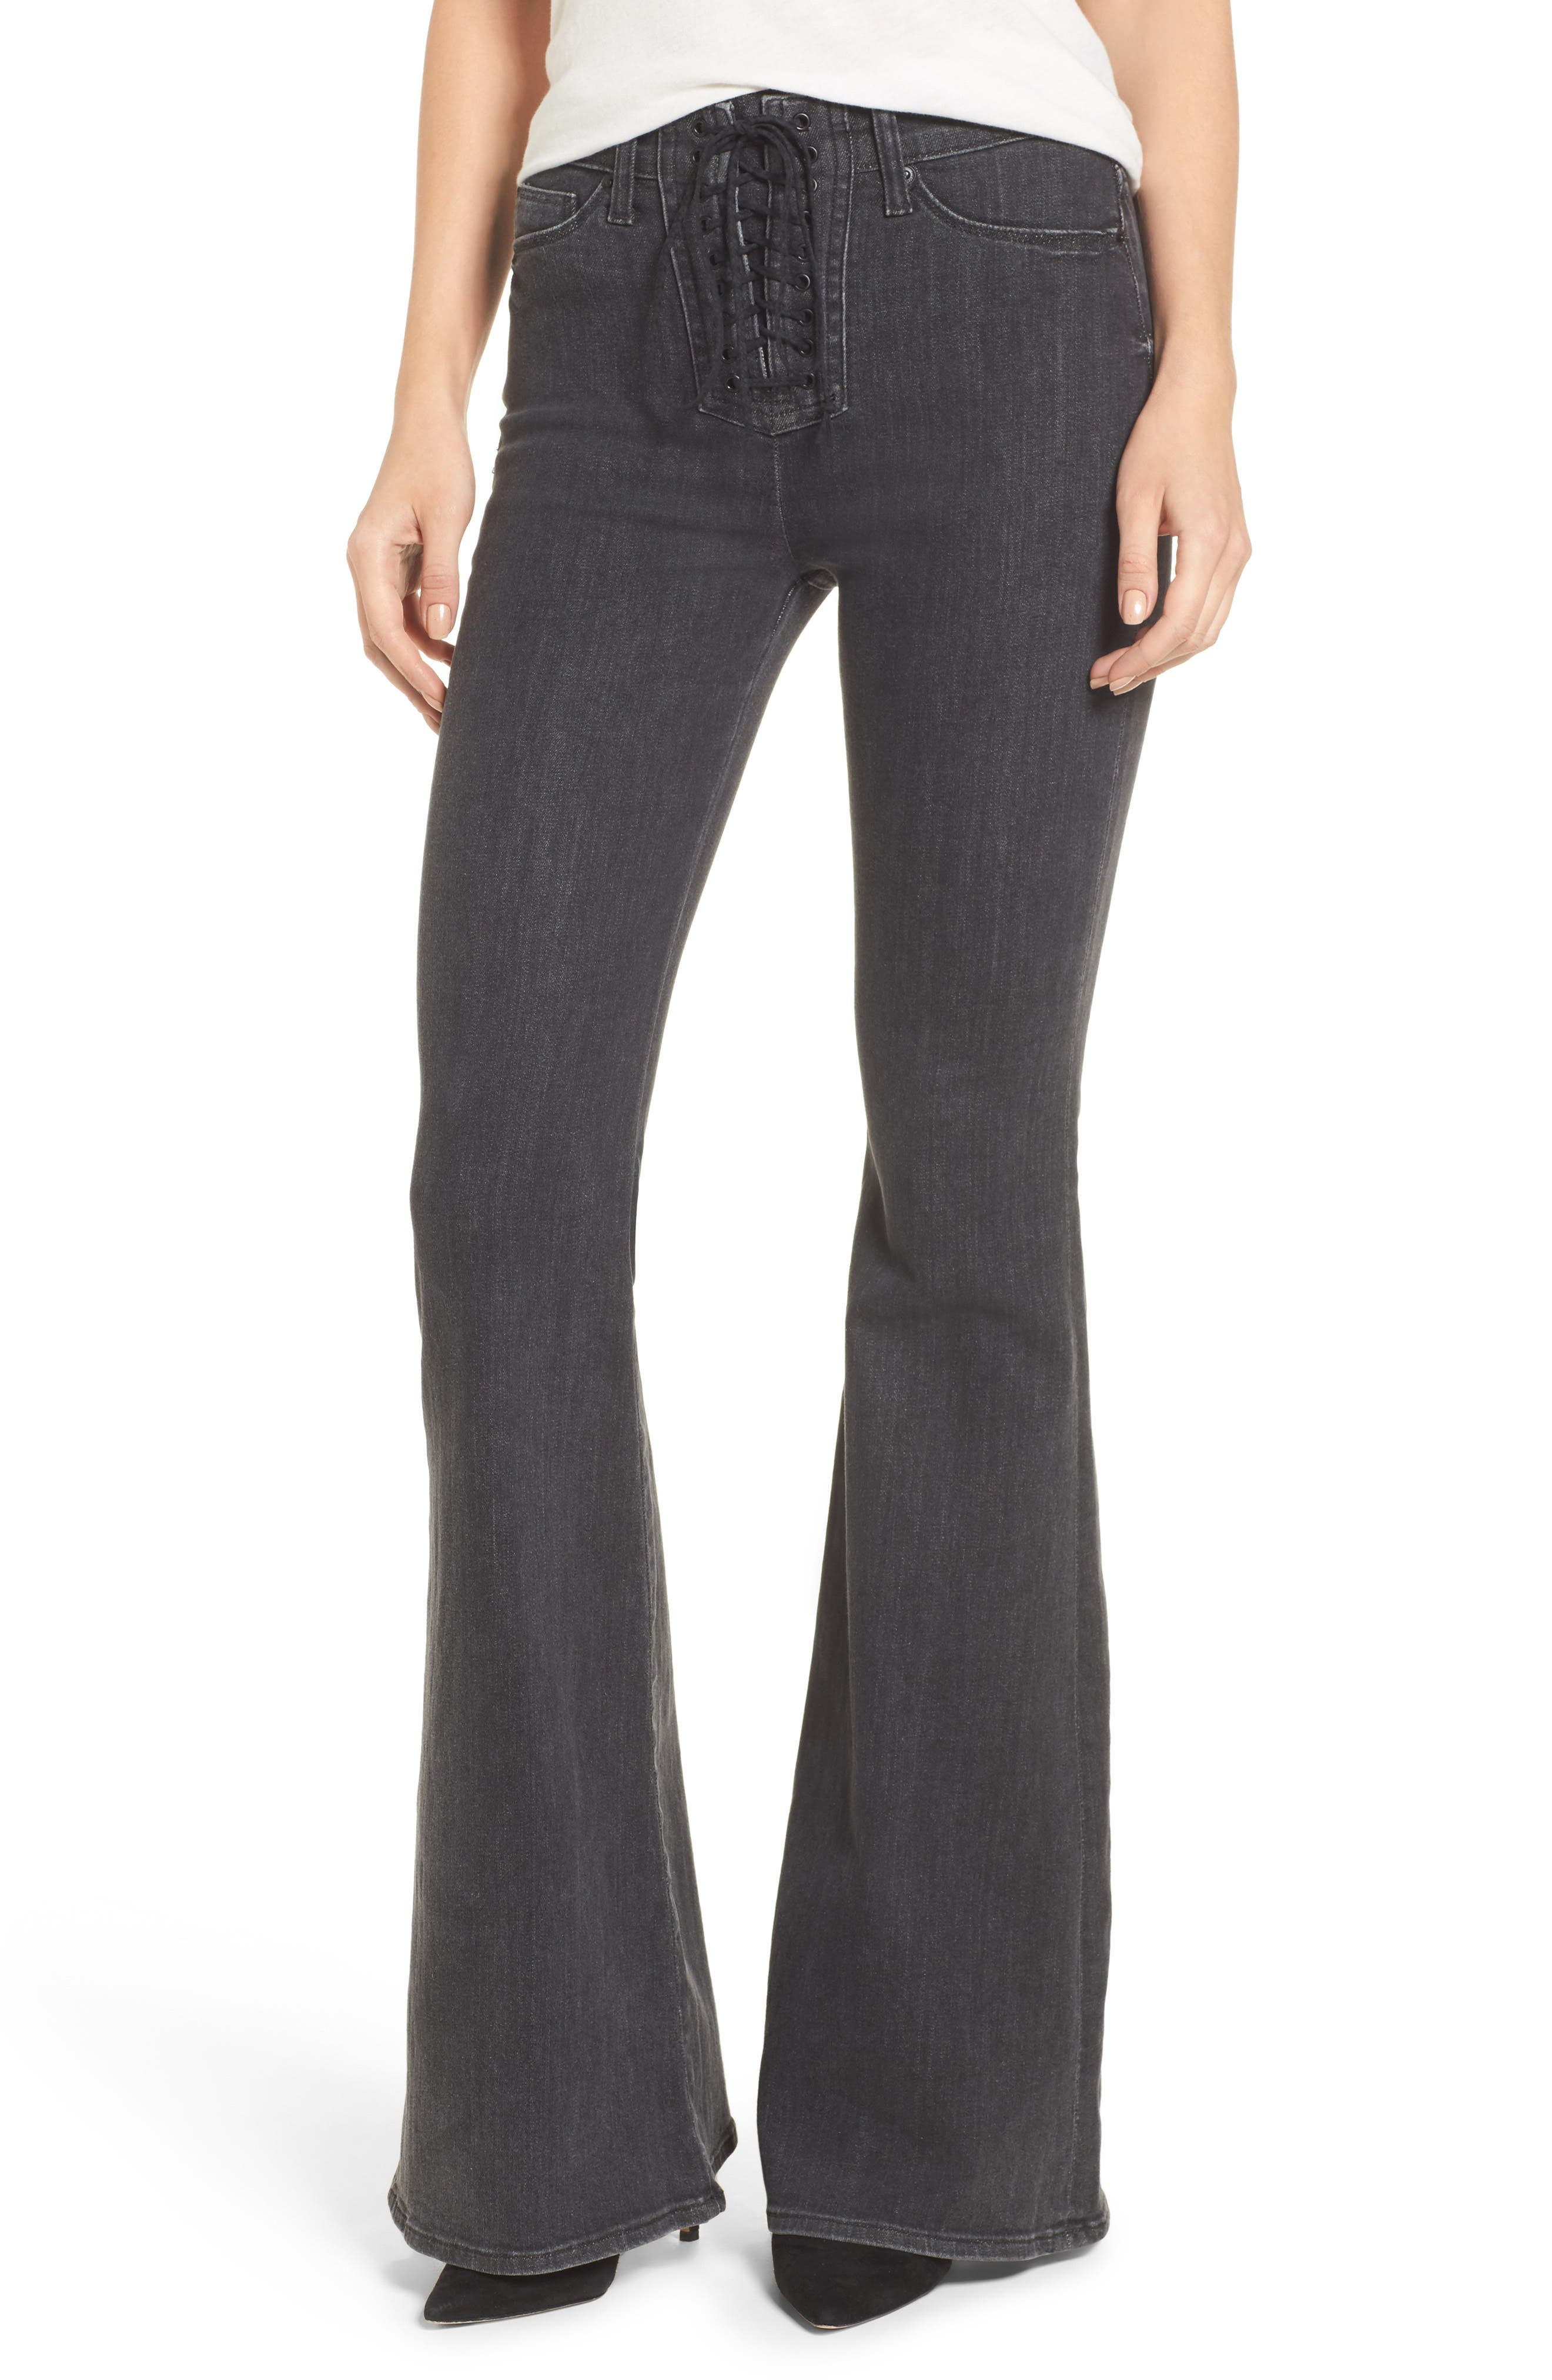 Bullocks High Waist Lace-Up Flare Jeans,                         Main,                         color,